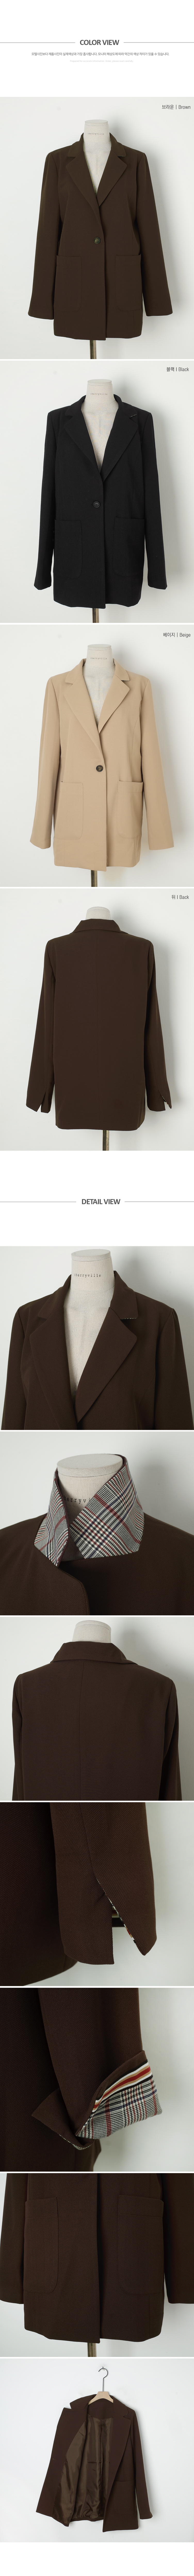 Outing Jacket